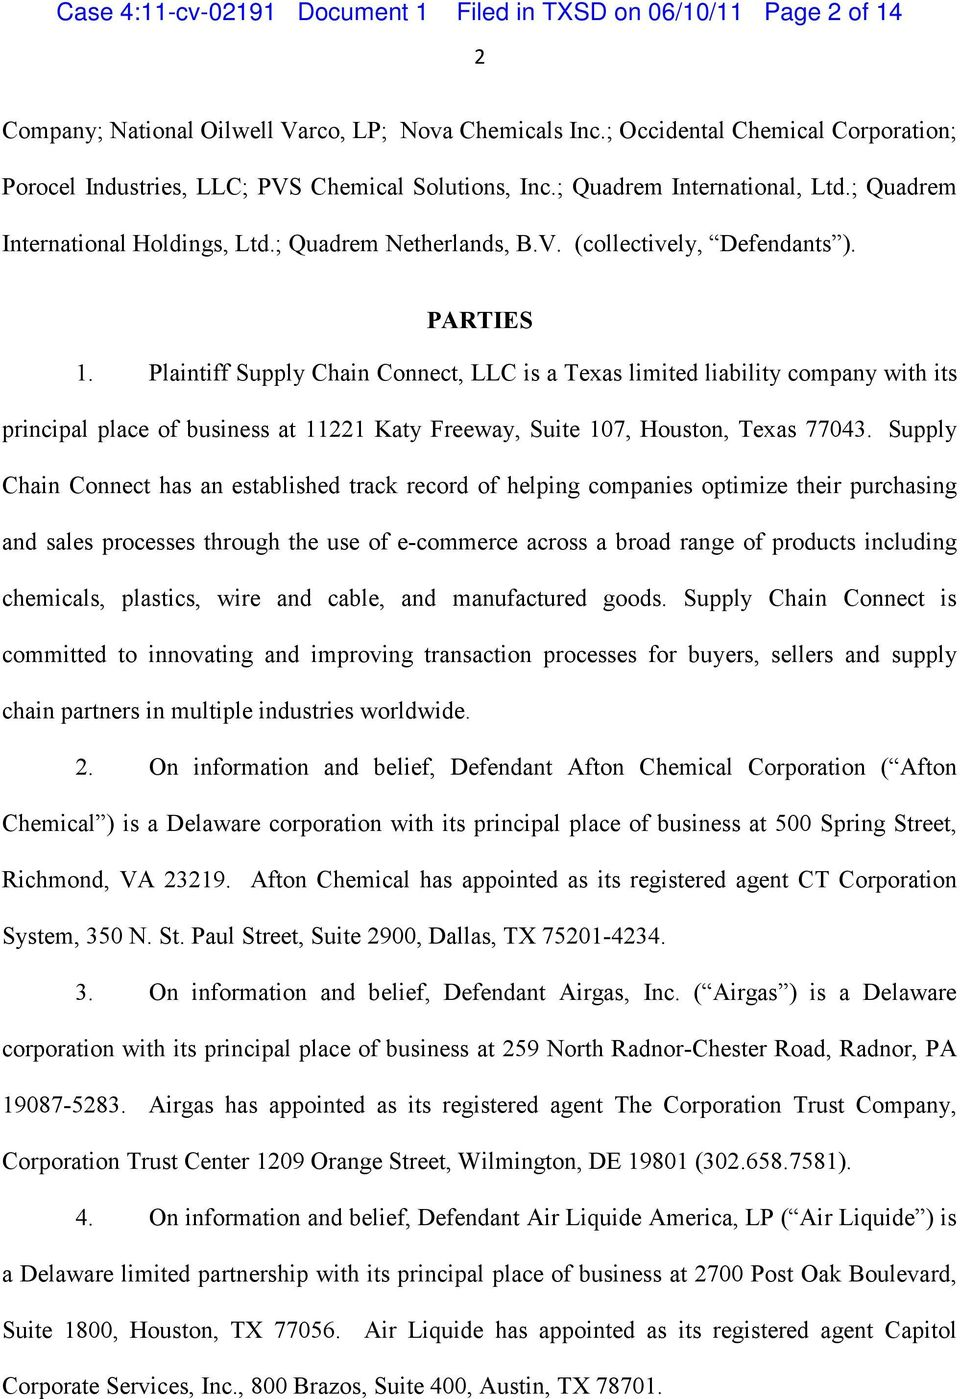 PARTIES 1. Plaintiff Supply Chain Connect, LLC is a Texas limited liability company with its principal place of business at 11221 Katy Freeway, Suite 107, Houston, Texas 77043.